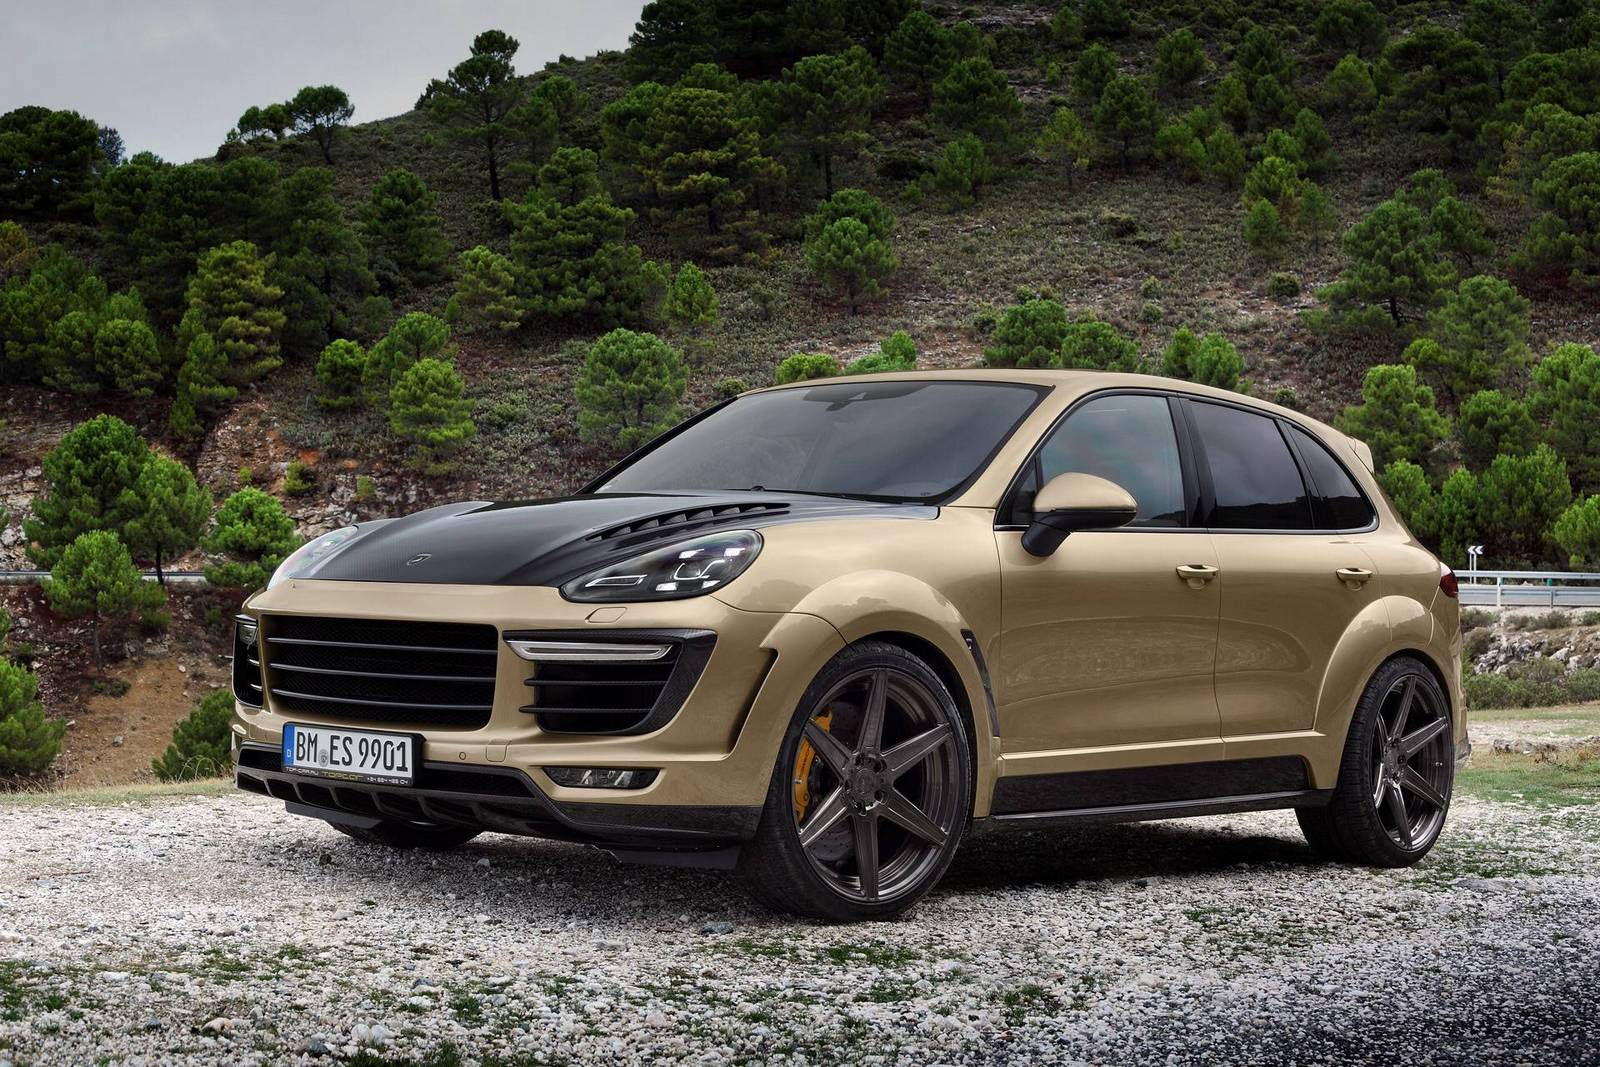 topcar porsche cayenne vantage gold edition gtspirit. Black Bedroom Furniture Sets. Home Design Ideas